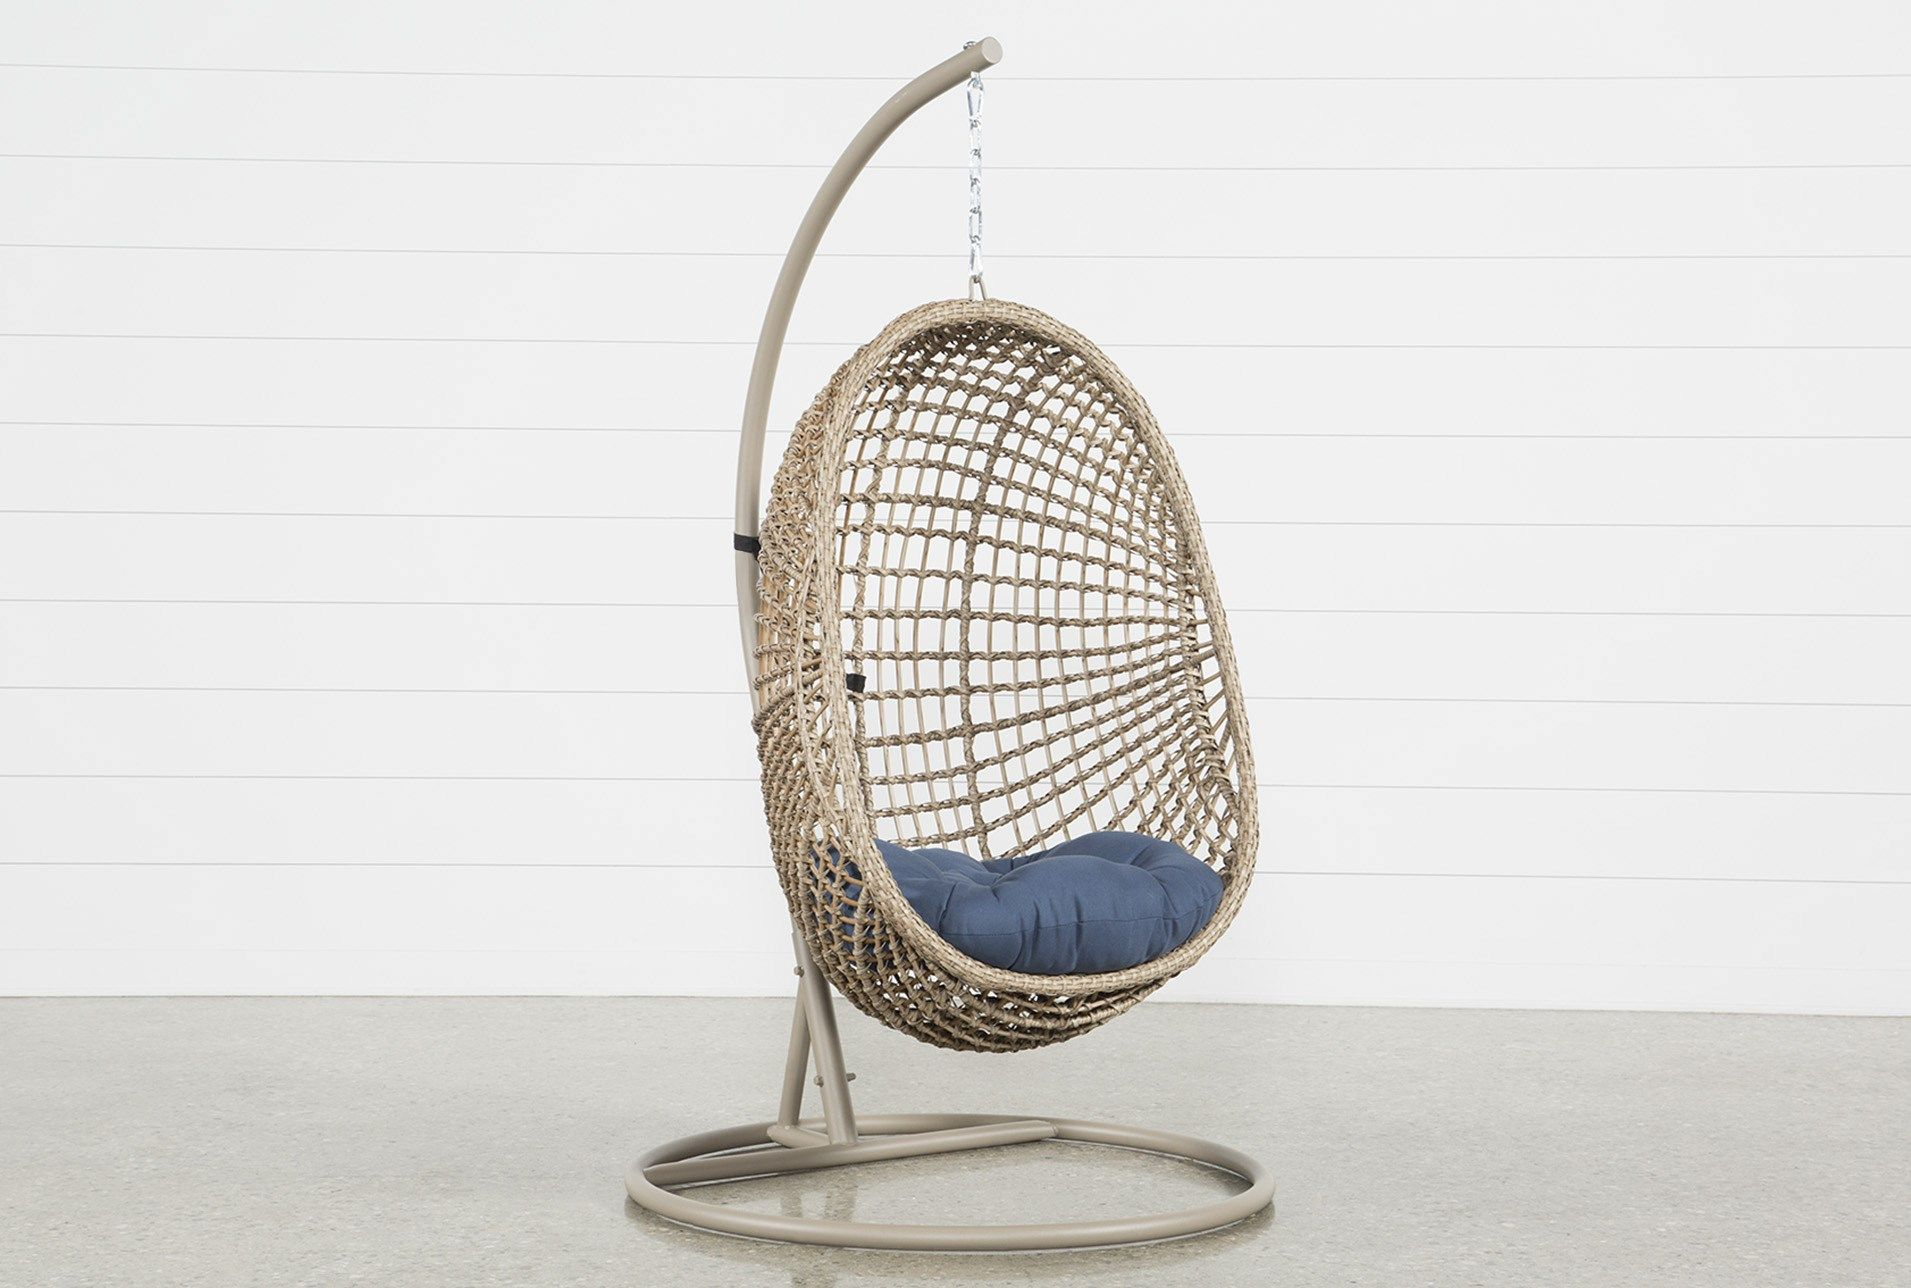 Grenada Outdoor Egg Chair in 2020 Egg chair, Hanging